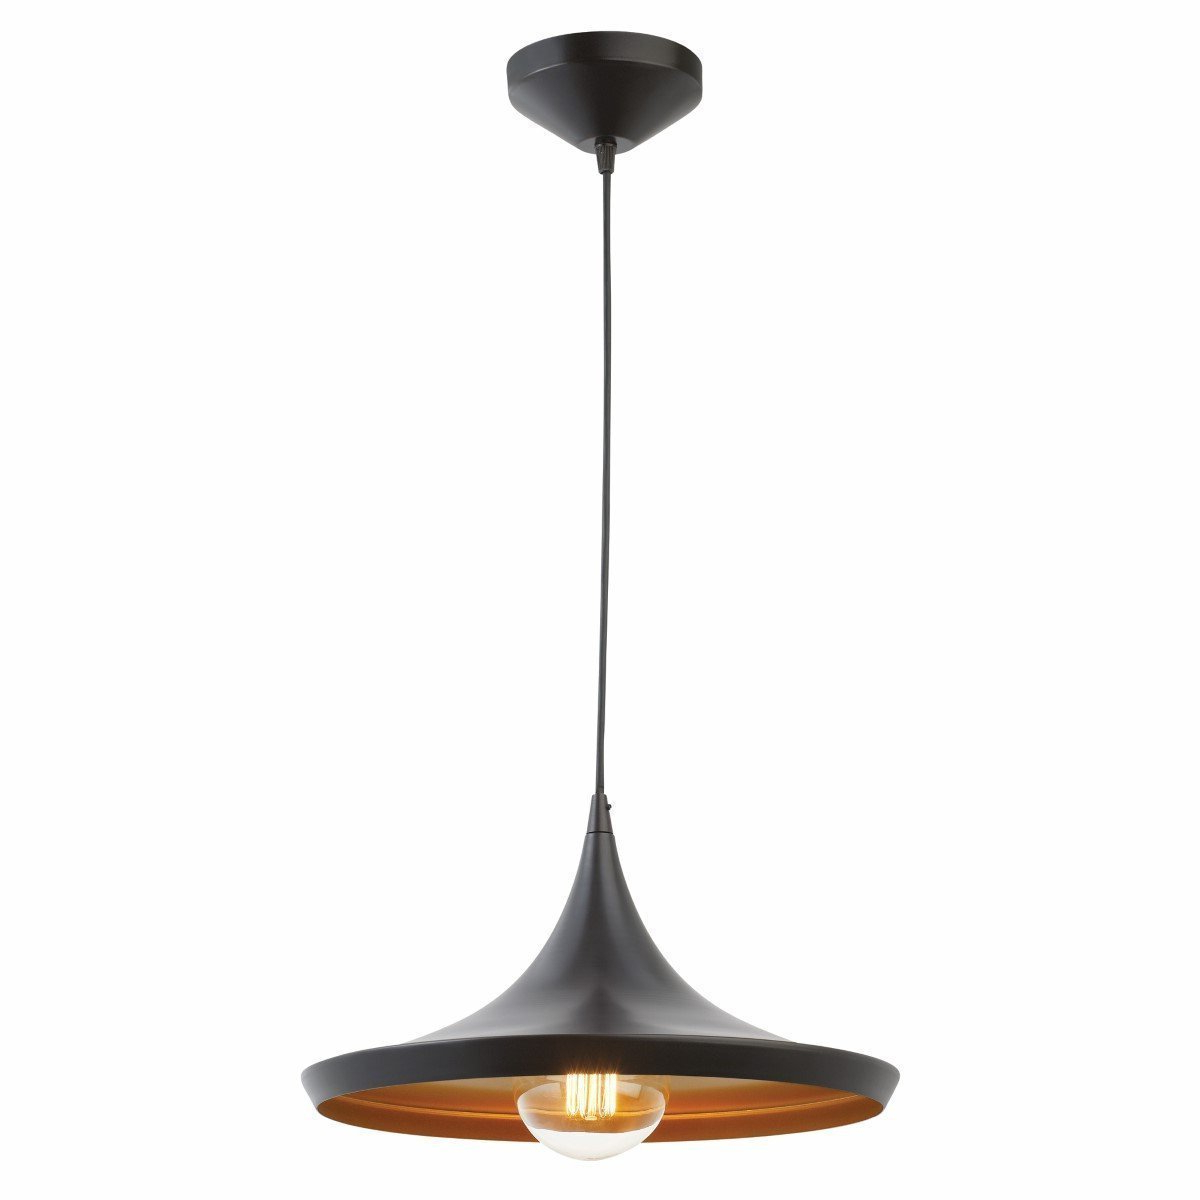 Details About Pendant Light Led Ceiling Lights Lamp Shade Industrial Cafe Lighting Kitchen Bar Within Most Recently Released Akash Industrial Vintage 1 Light Geometric Pendants (View 9 of 20)